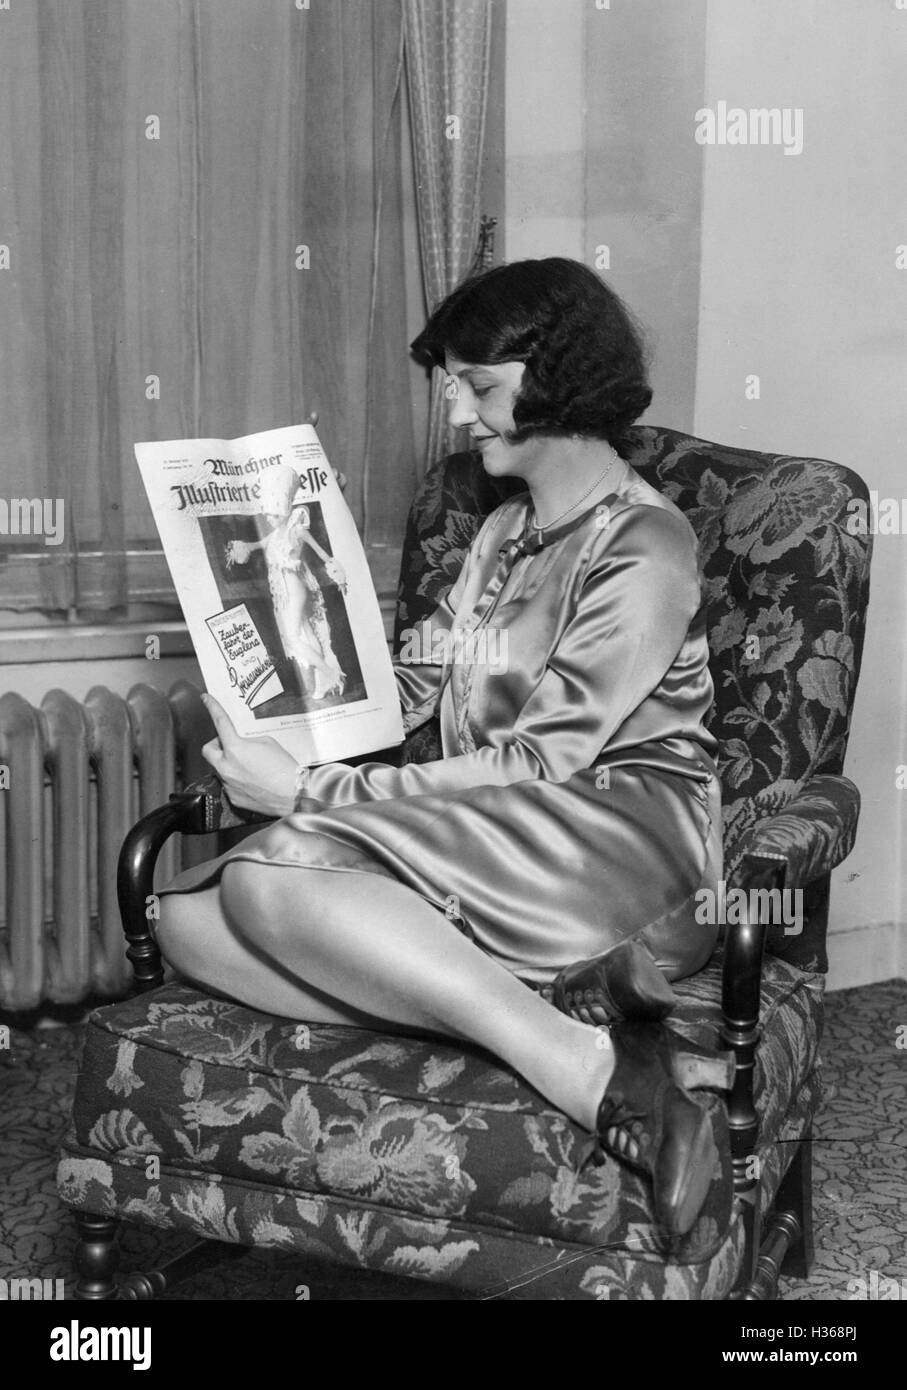 'Woman with an edition of the ''Muenchner Illustrierte Presse'', 1925' - Stock Image